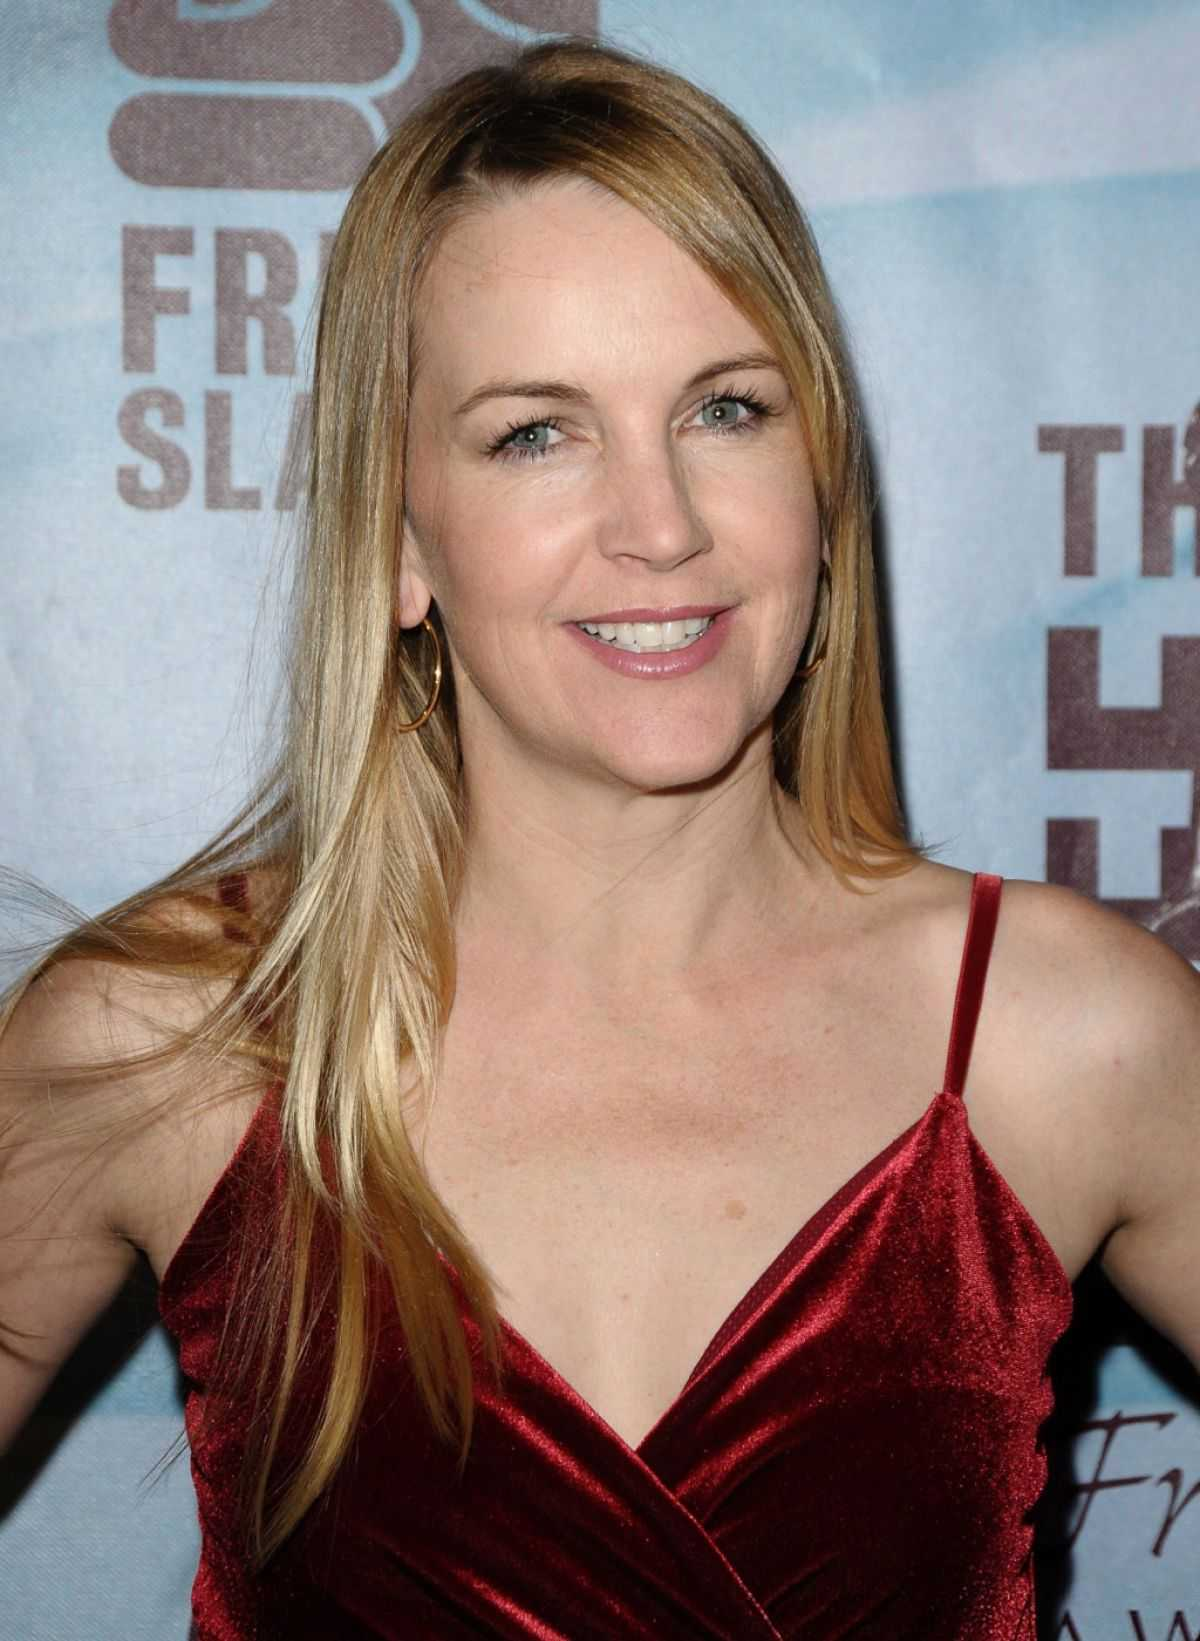 renee o'connor cleavage pics